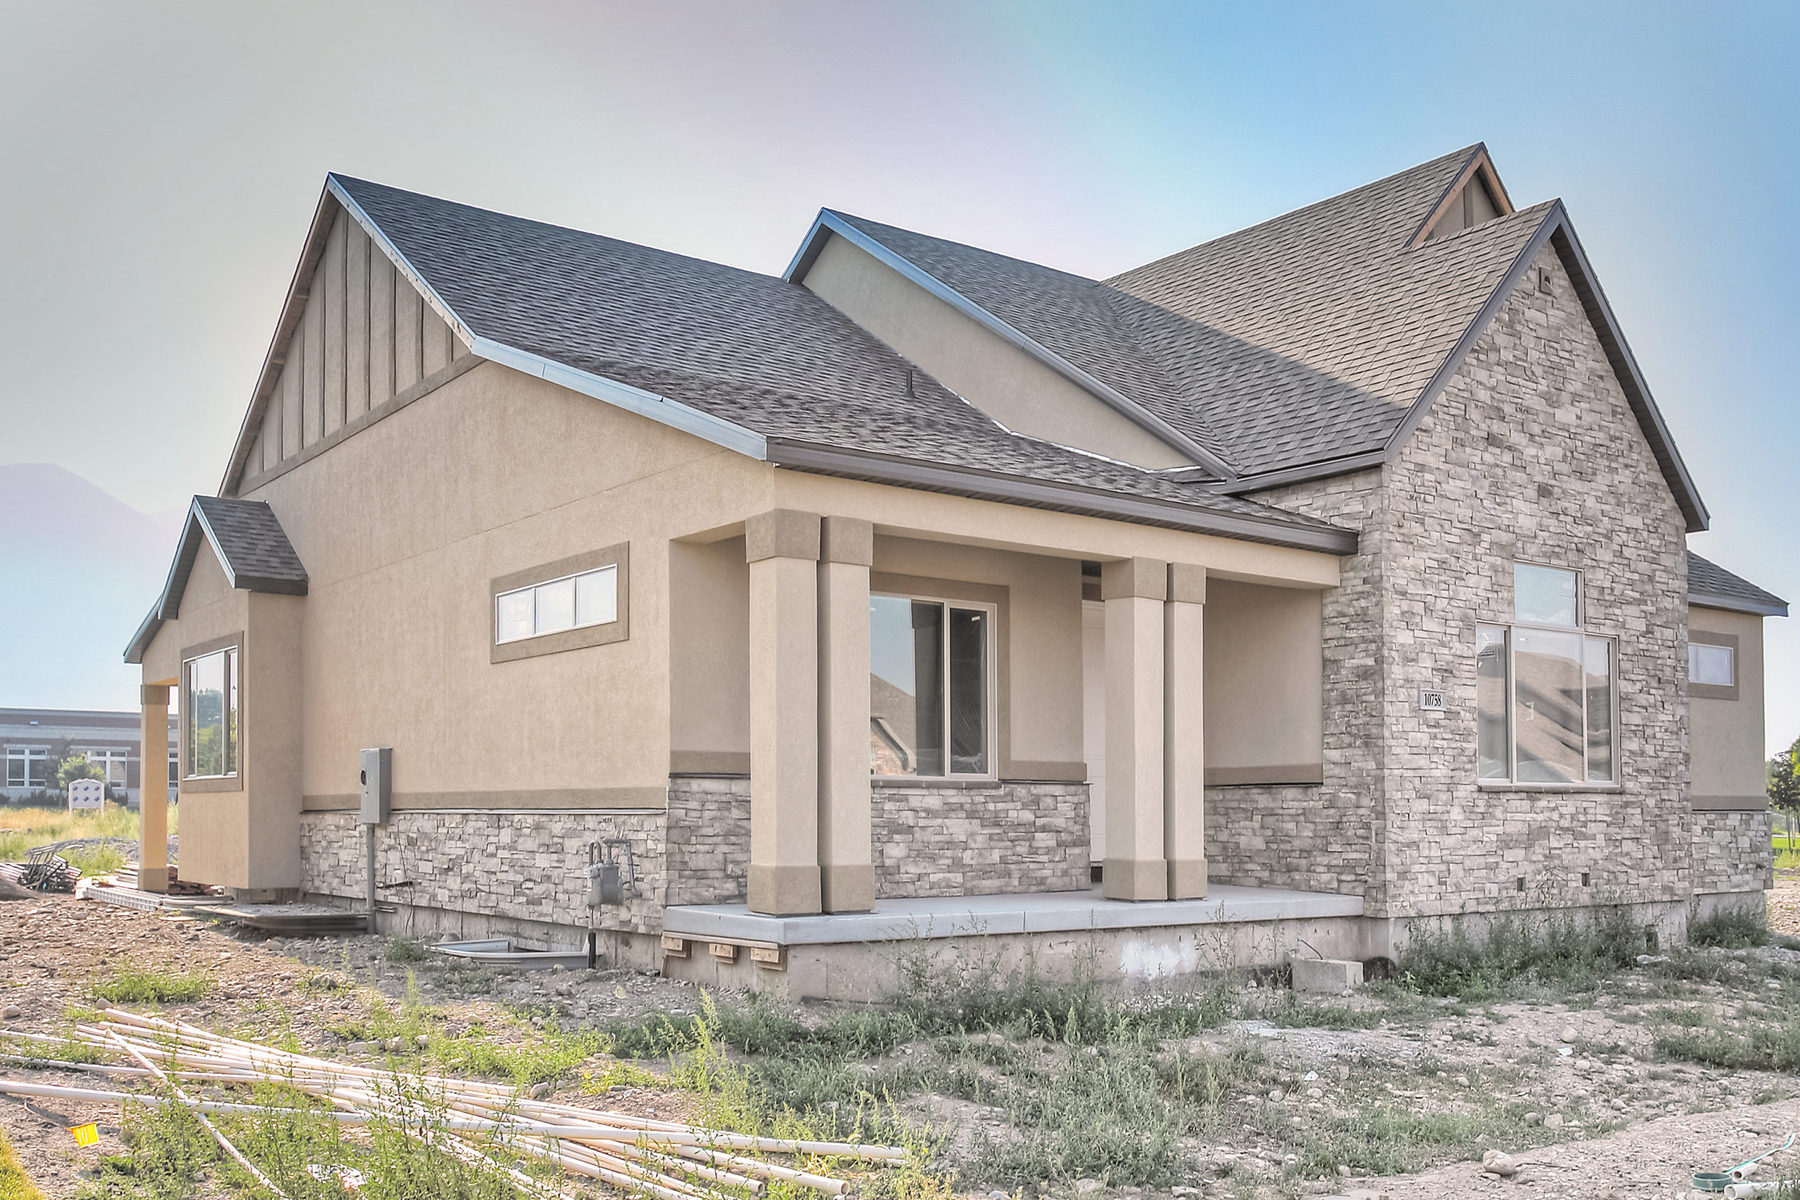 Casa Unifamiliar por un Venta en Highland Village Exclusive 10758 N Crestview Dr Lot #37 Highland, Utah 84003 Estados Unidos